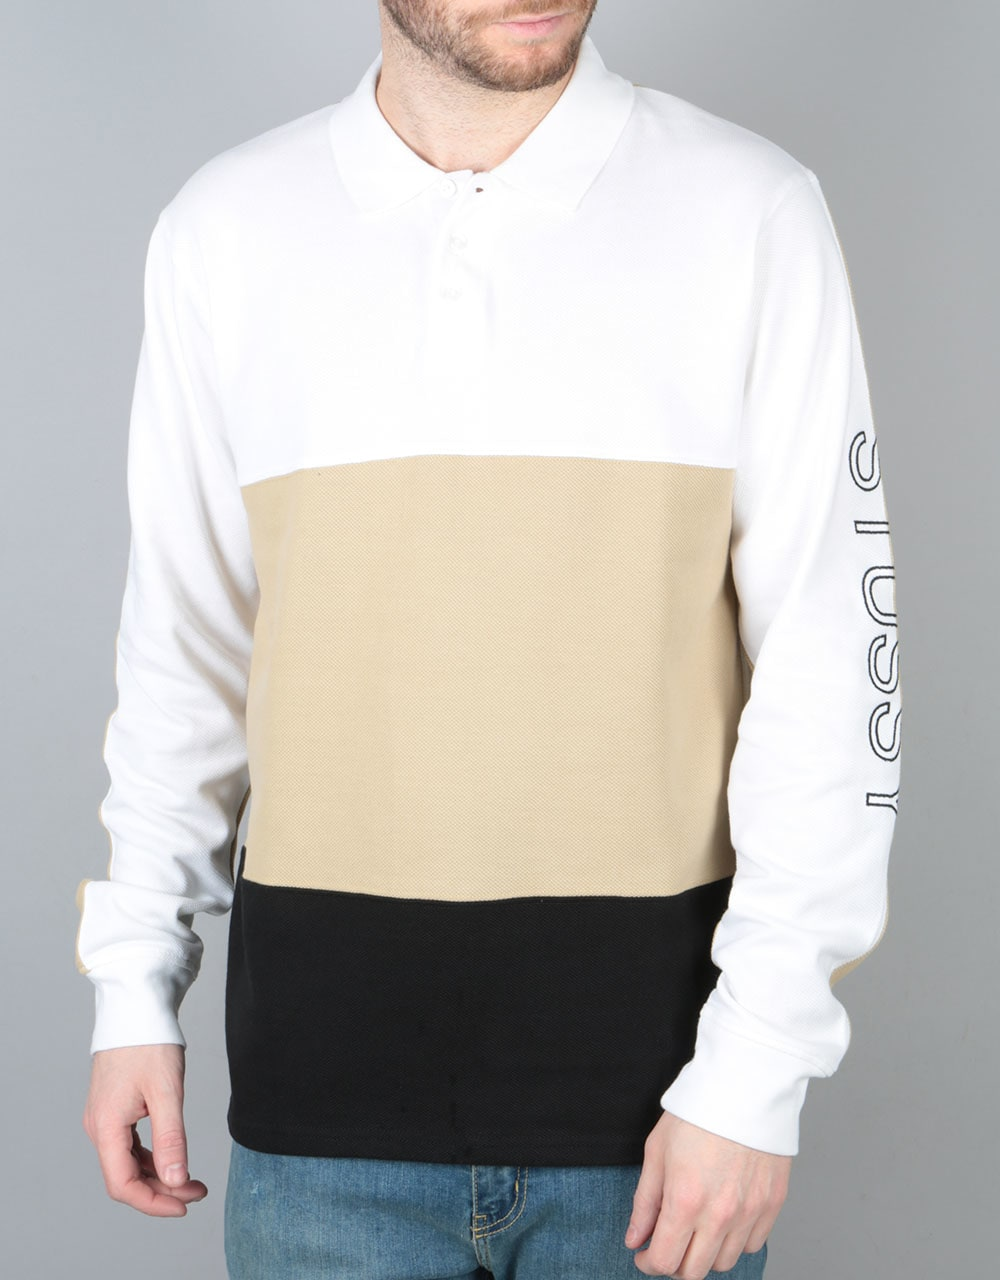 806d3ae00 Stüssy Panel Pique Polo Shirt - White   Skate Clothing   Mens Skateboard  Clothes   Route One